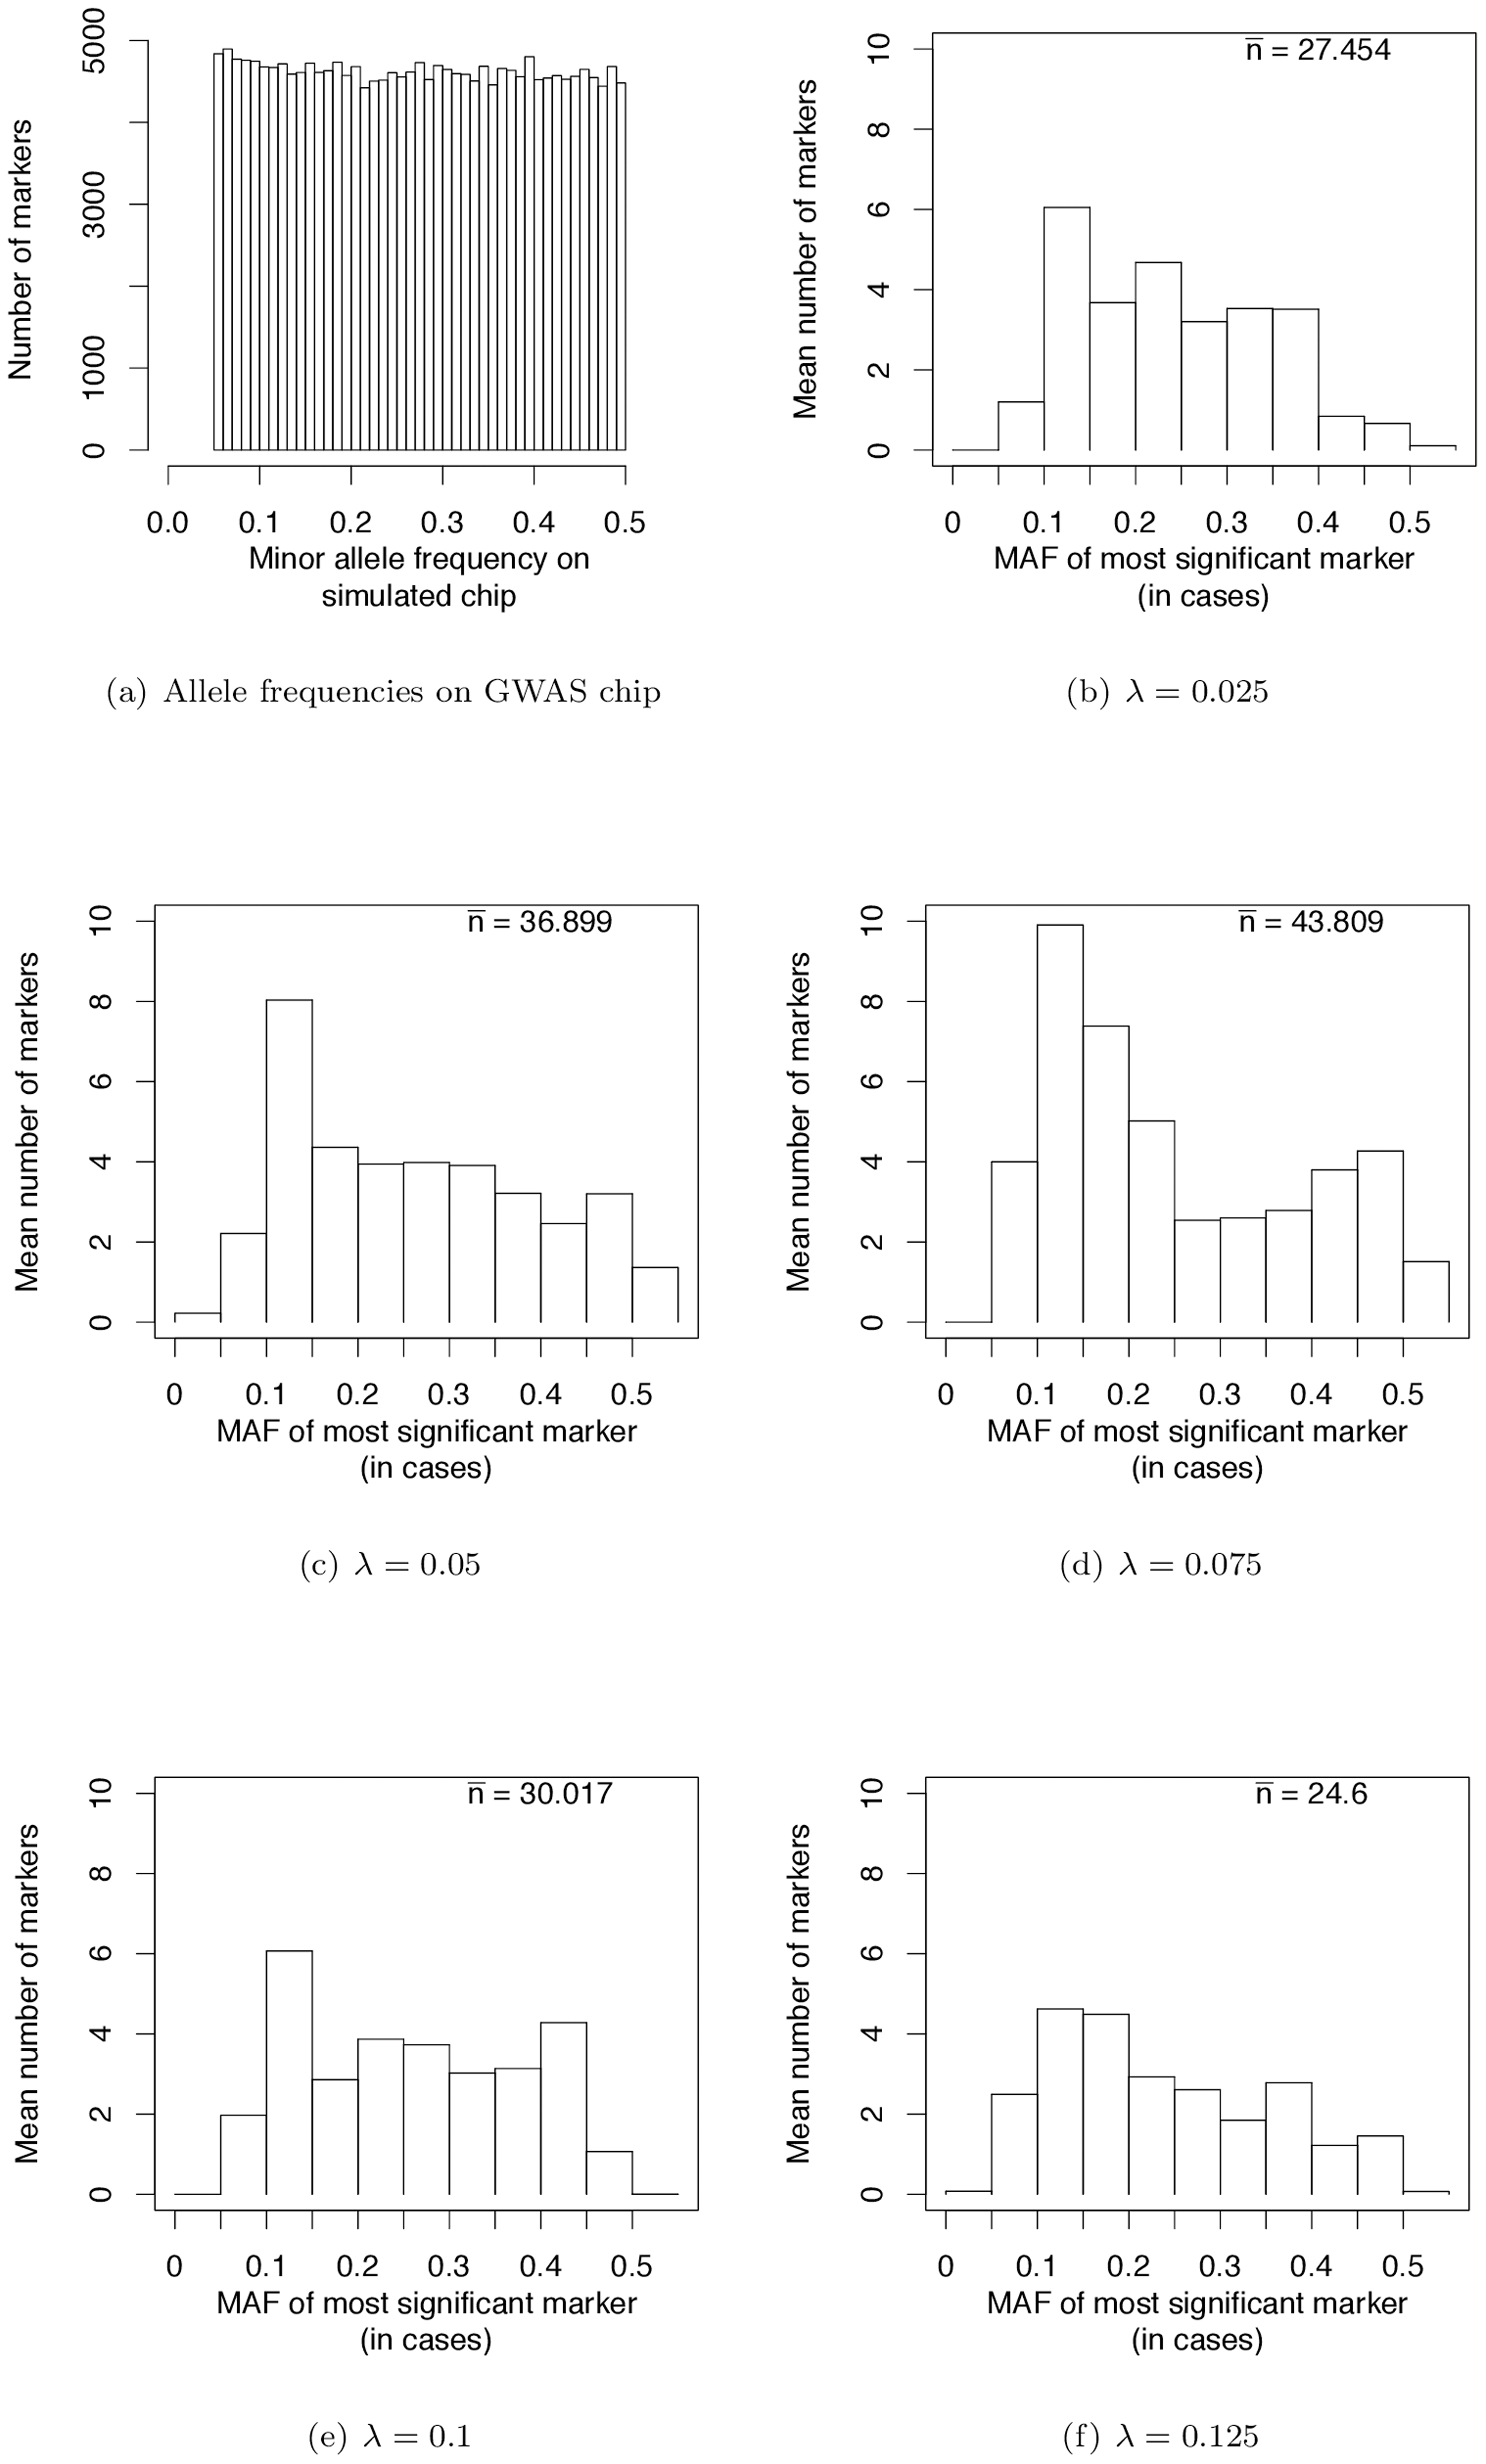 Frequencies of most significant markers (based on the logistic regression test) in GWAS based on genotyping panels of previously ascertained SNPs.